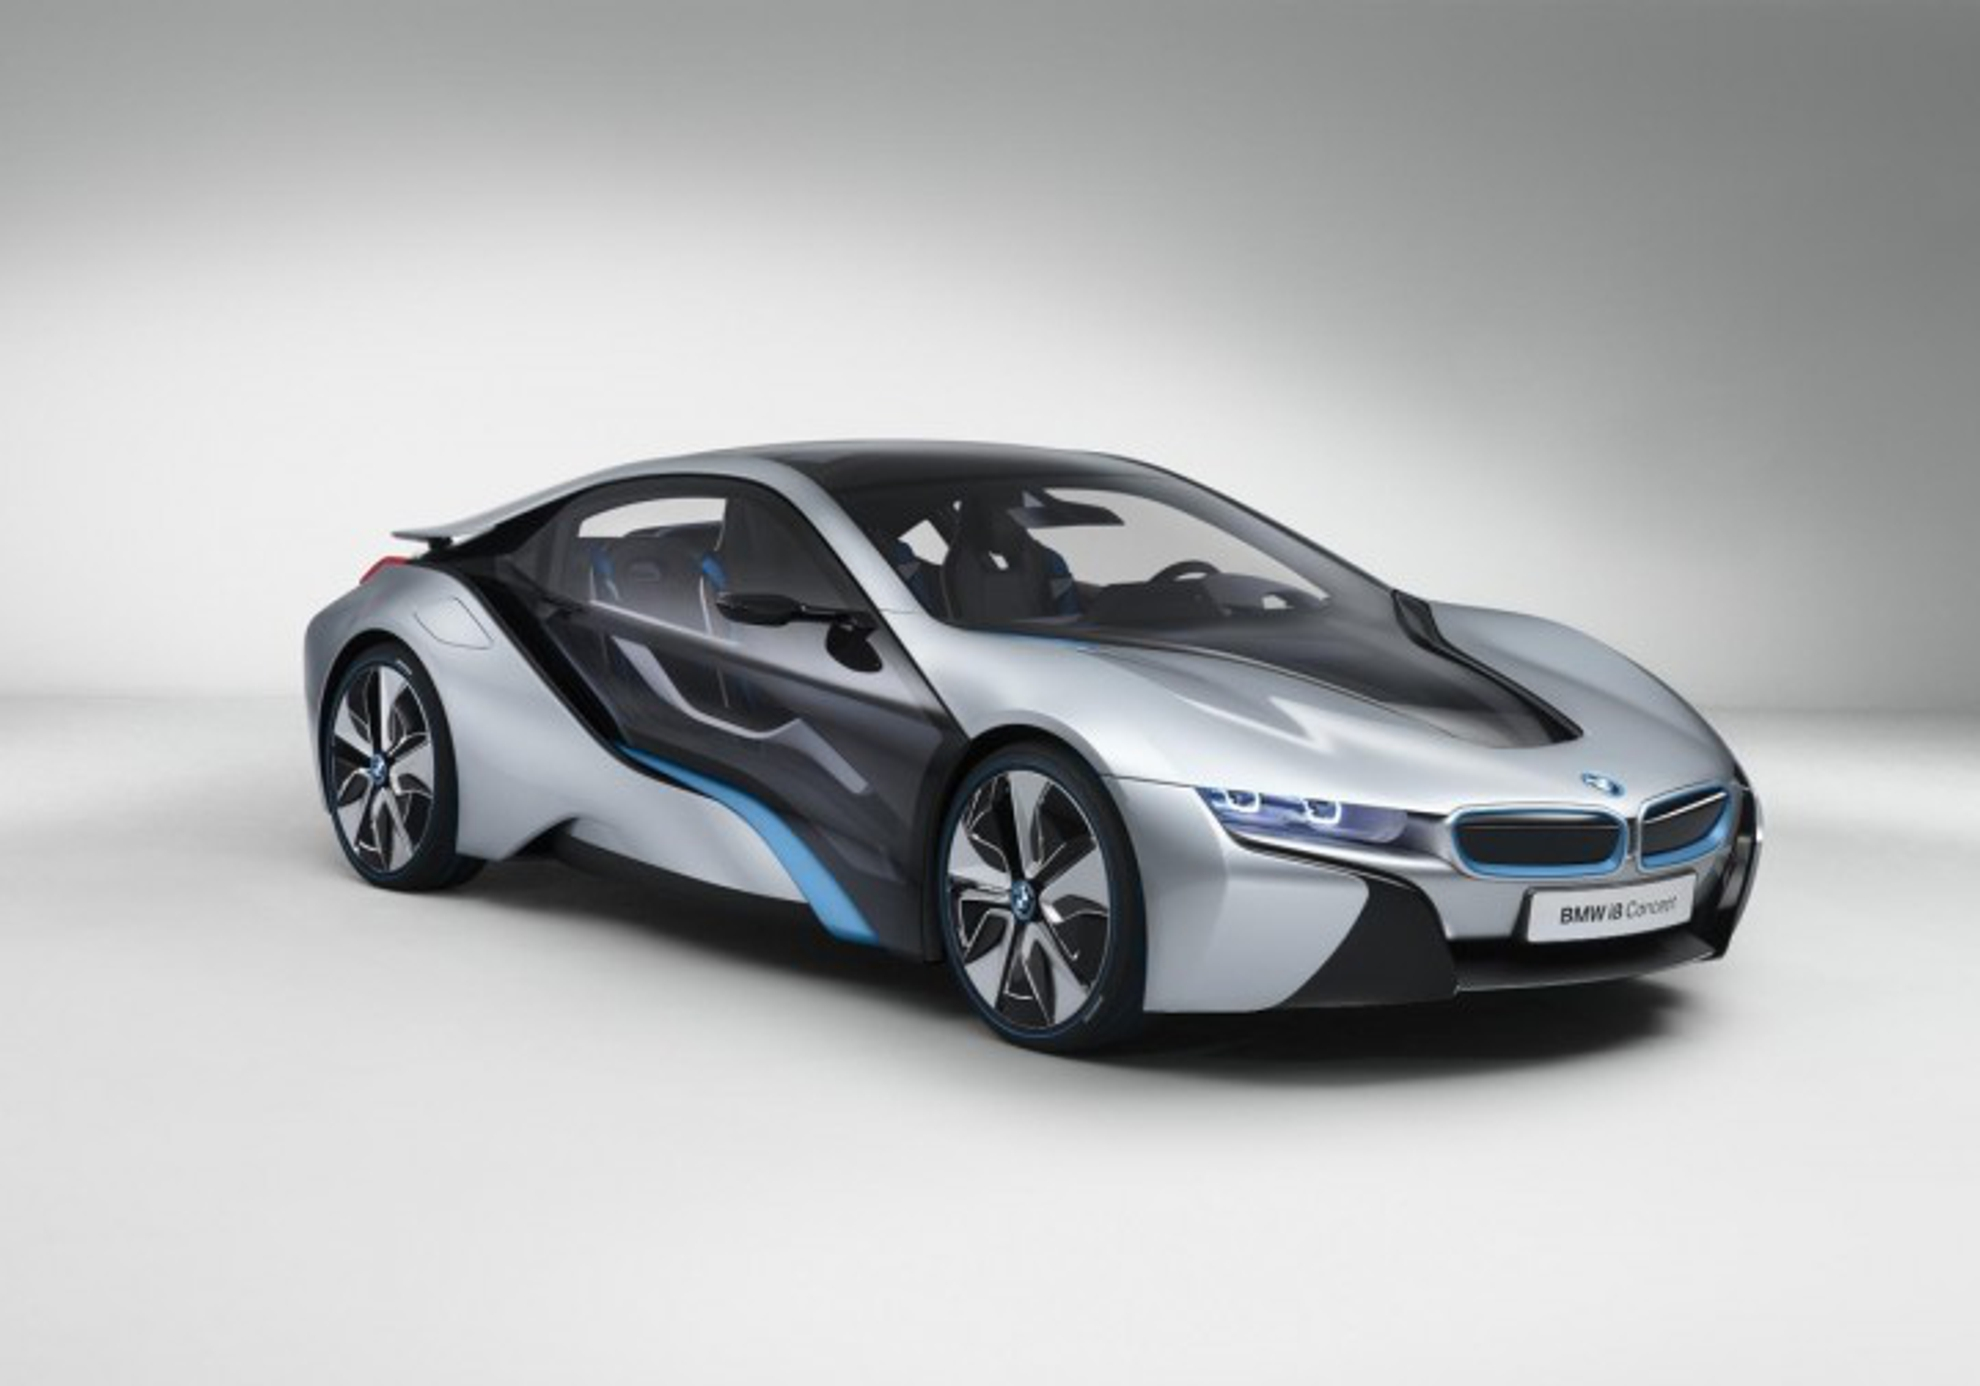 bmw i8 plug in hybrid sports cars uk engine plant to build engine. Black Bedroom Furniture Sets. Home Design Ideas